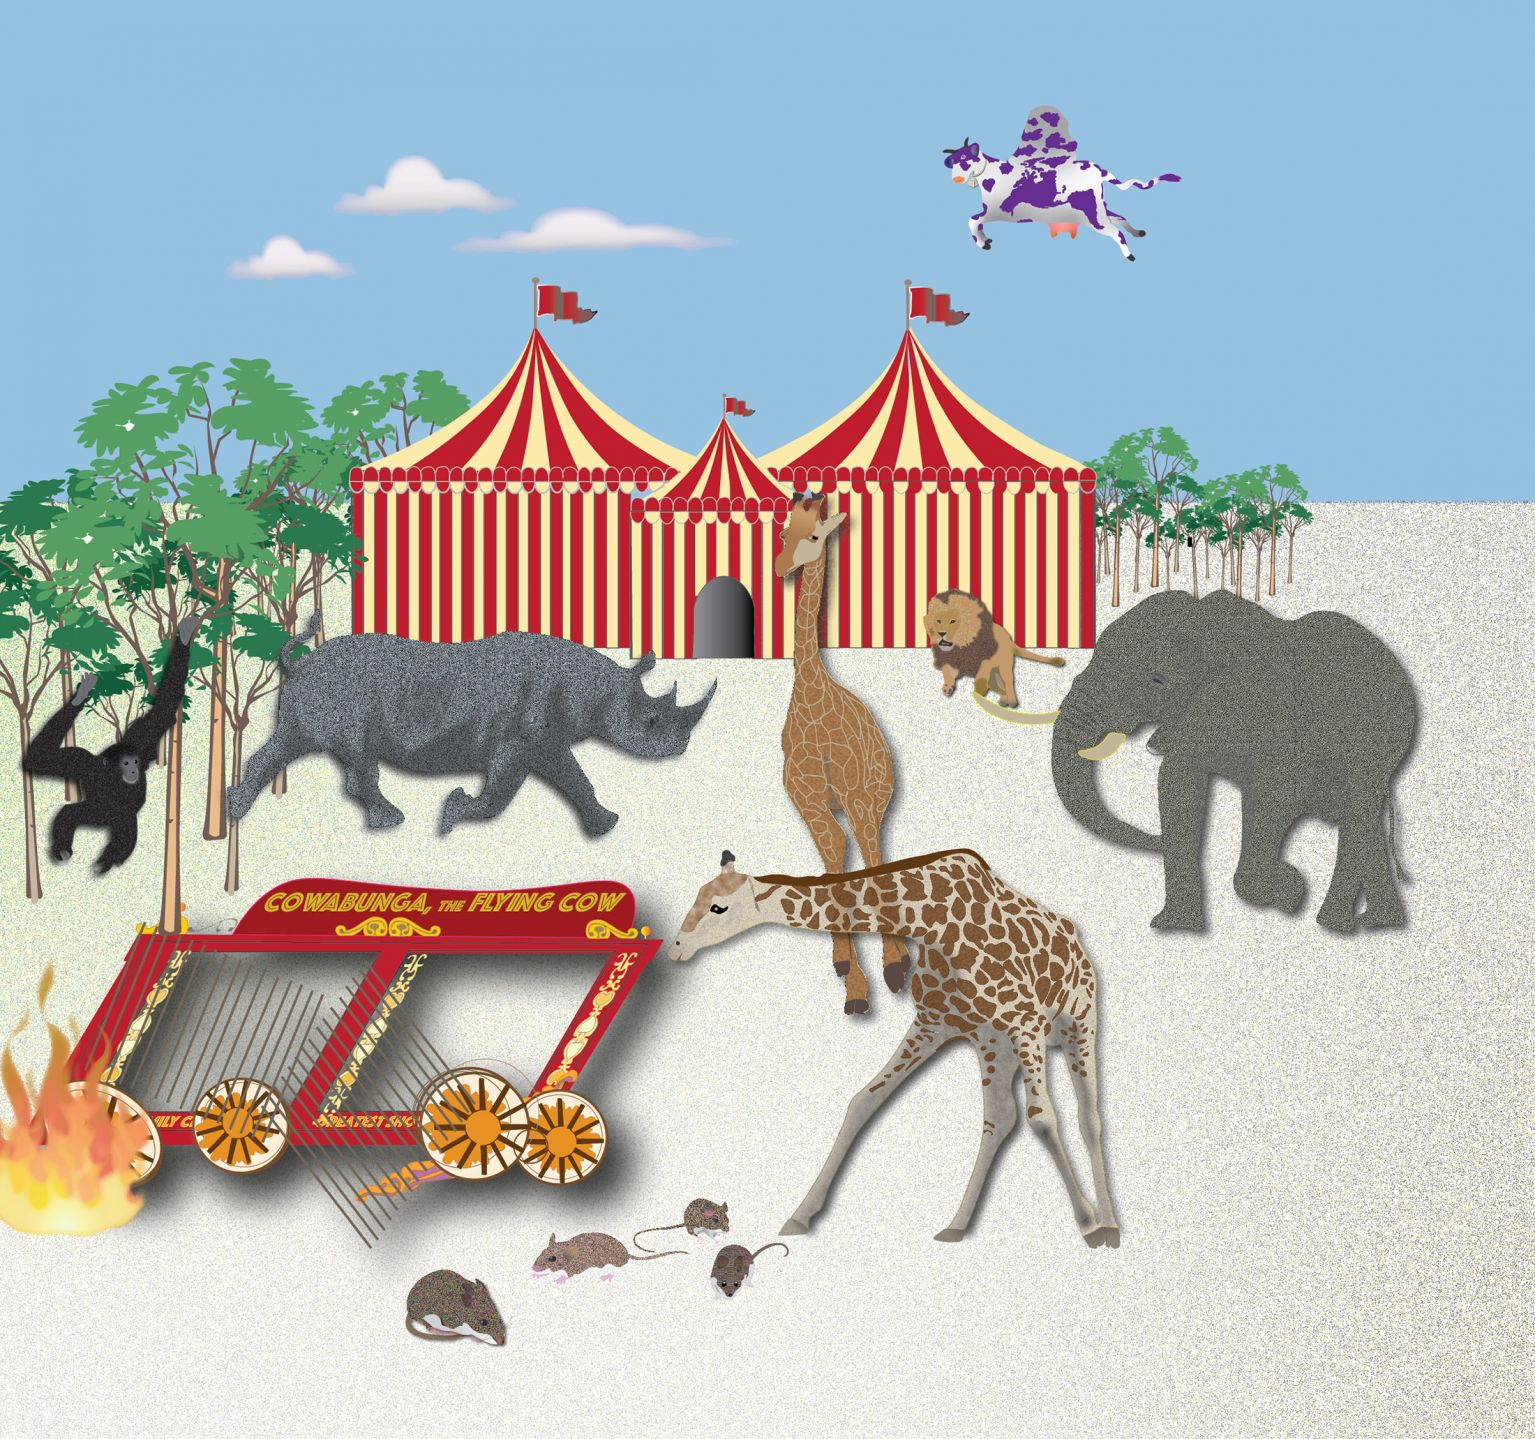 Circus break illustration from the book